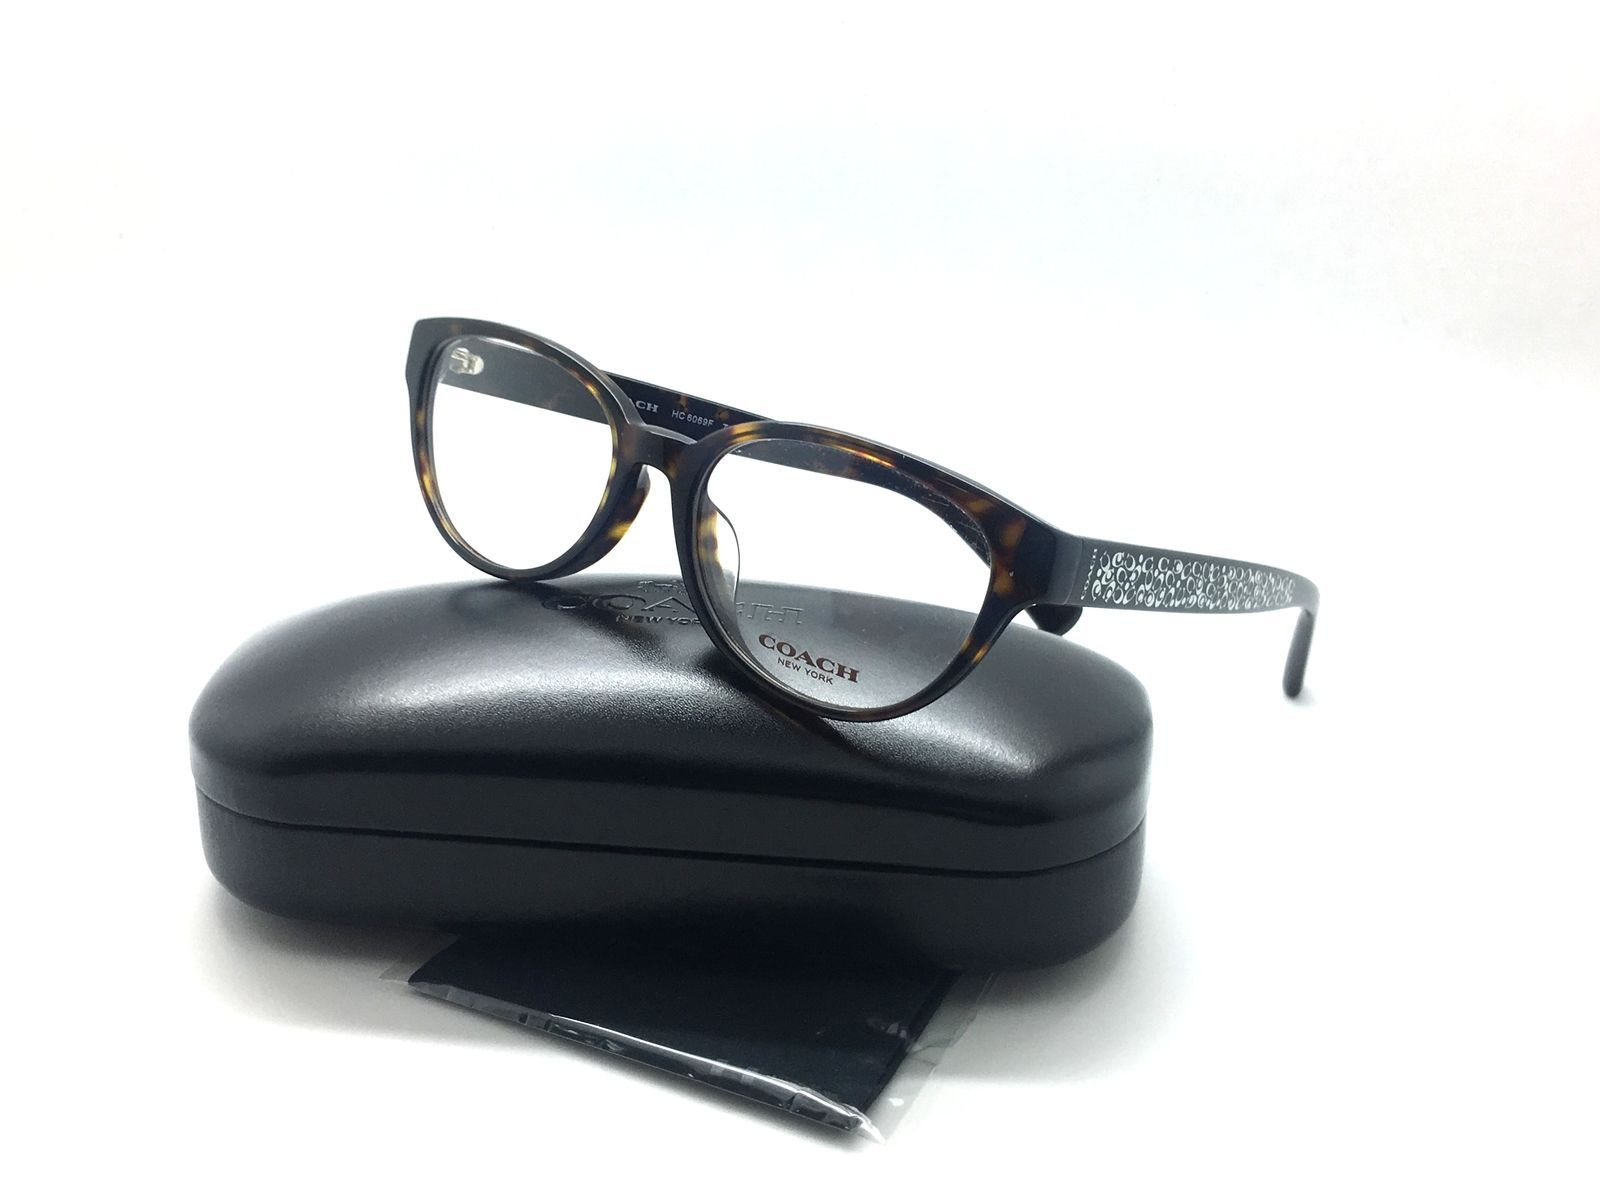 Coach Eyeglass Frame: 331 listings